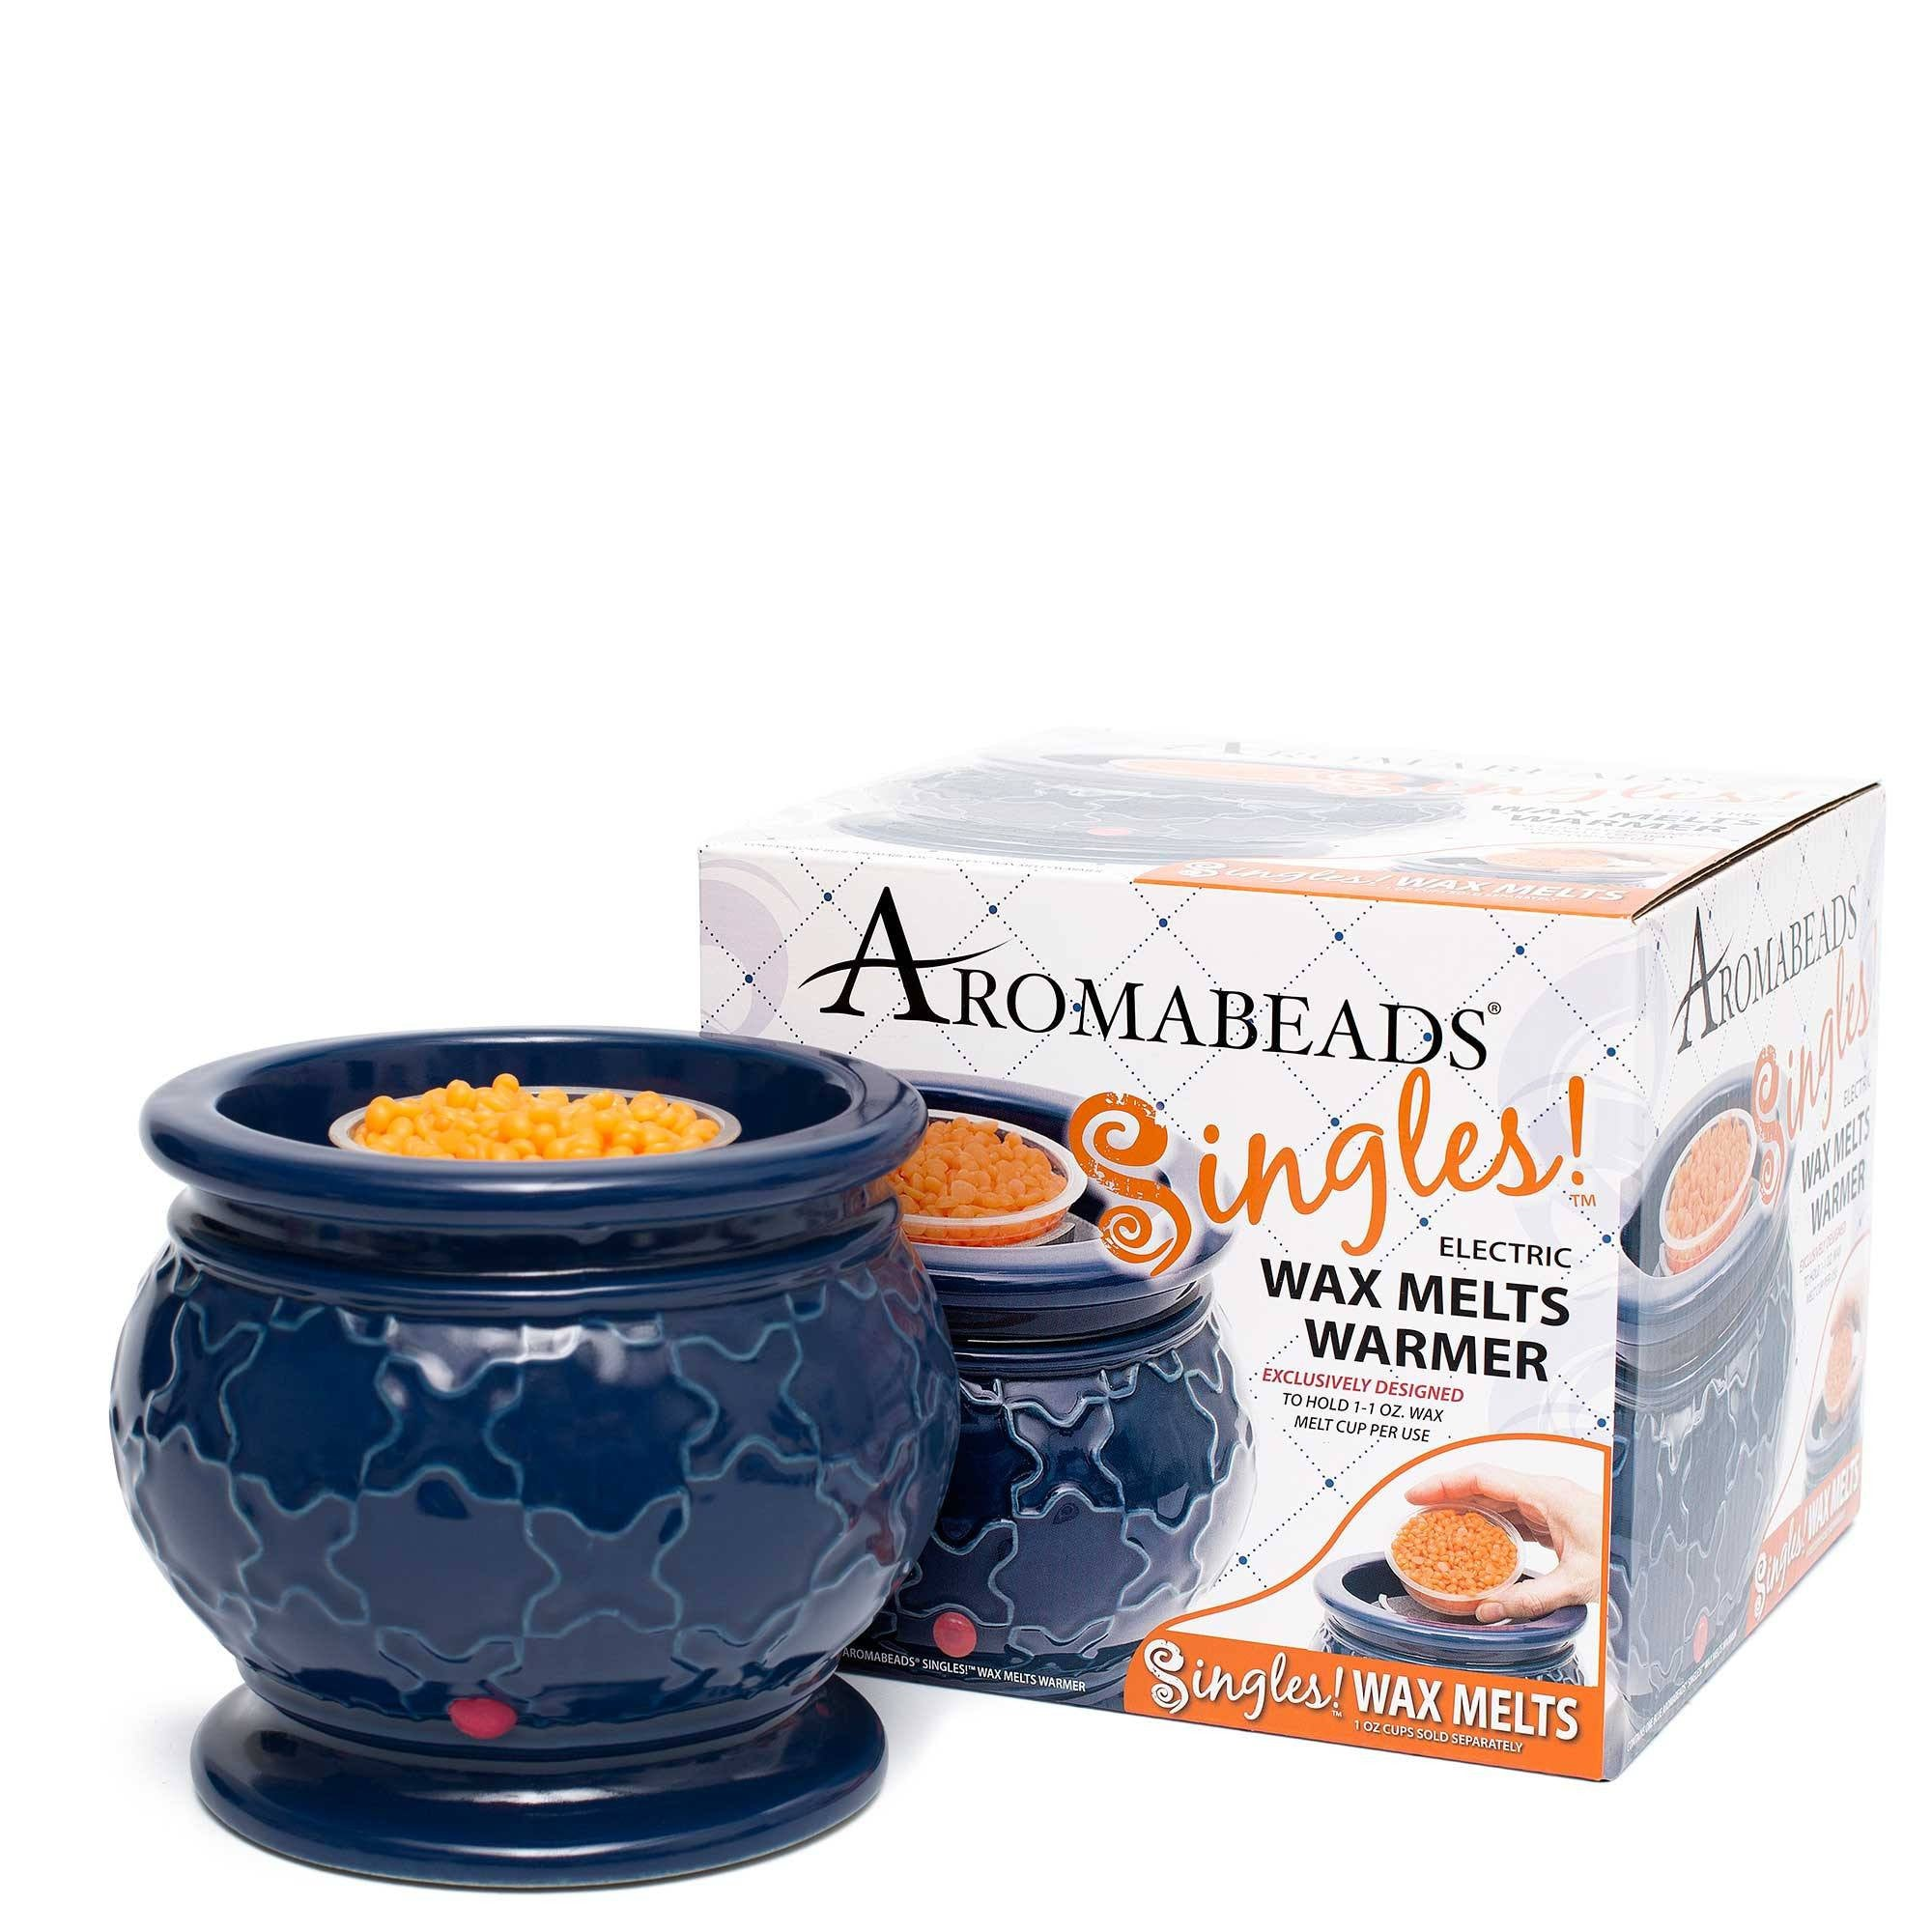 Aromabeads Singles Soft Lilac Petals Scented Wax Melts Melts Candlemart.com $ 1.49